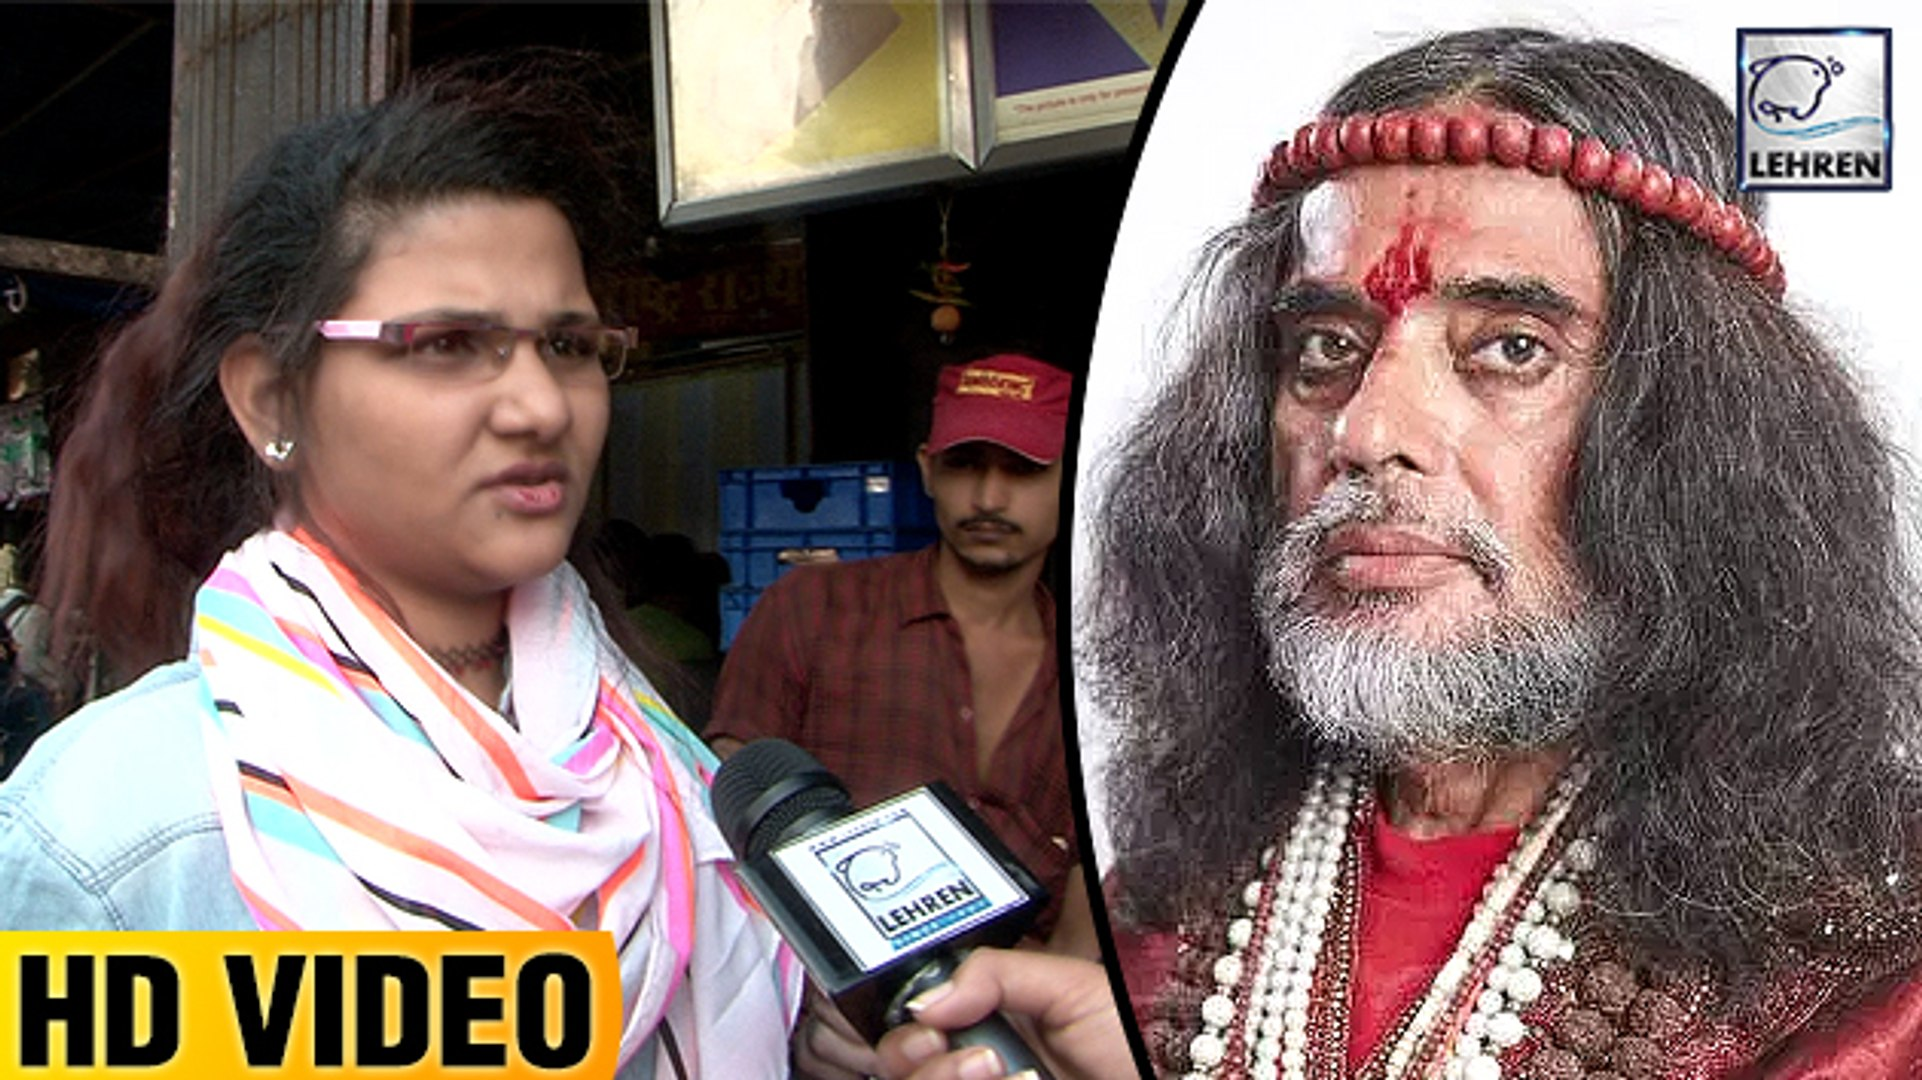 Bigg Boss Fans Criticize Om Swami For Awfully Acts | Bigg Boss 10